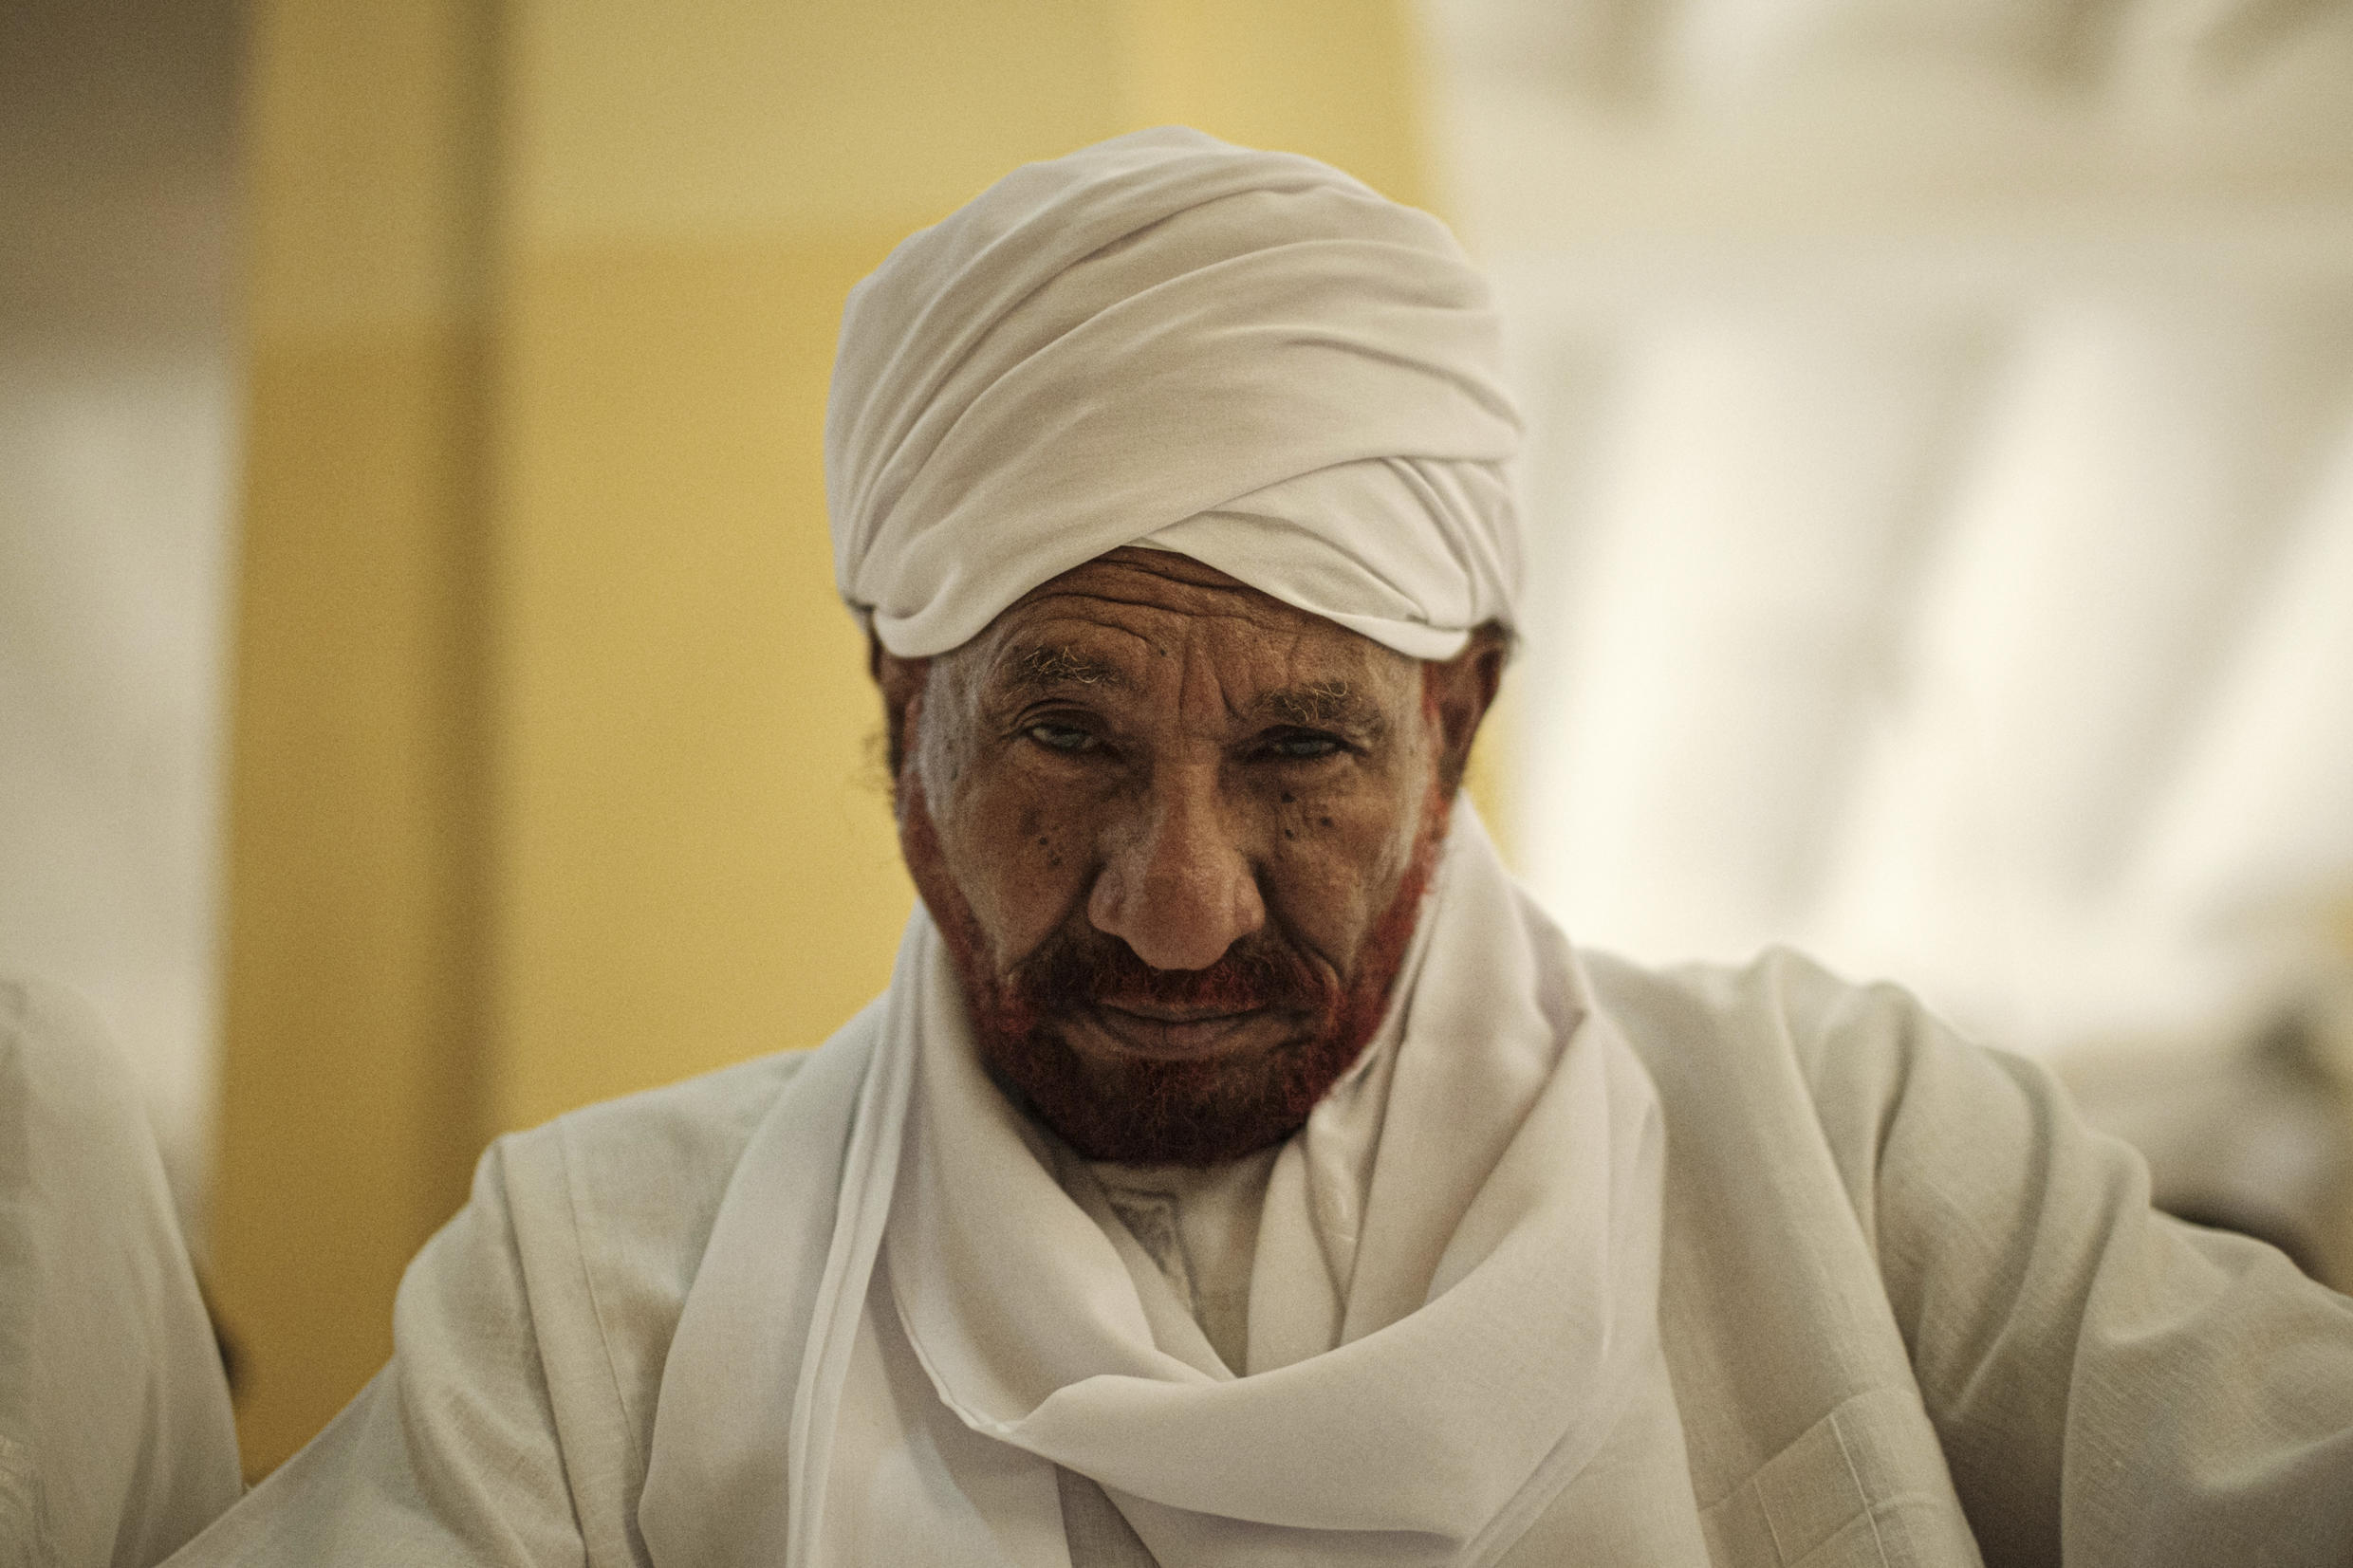 Sadiq al-Mahdi was Sudan's last democratically elected prime minister before he was toppled in a 1989 coup